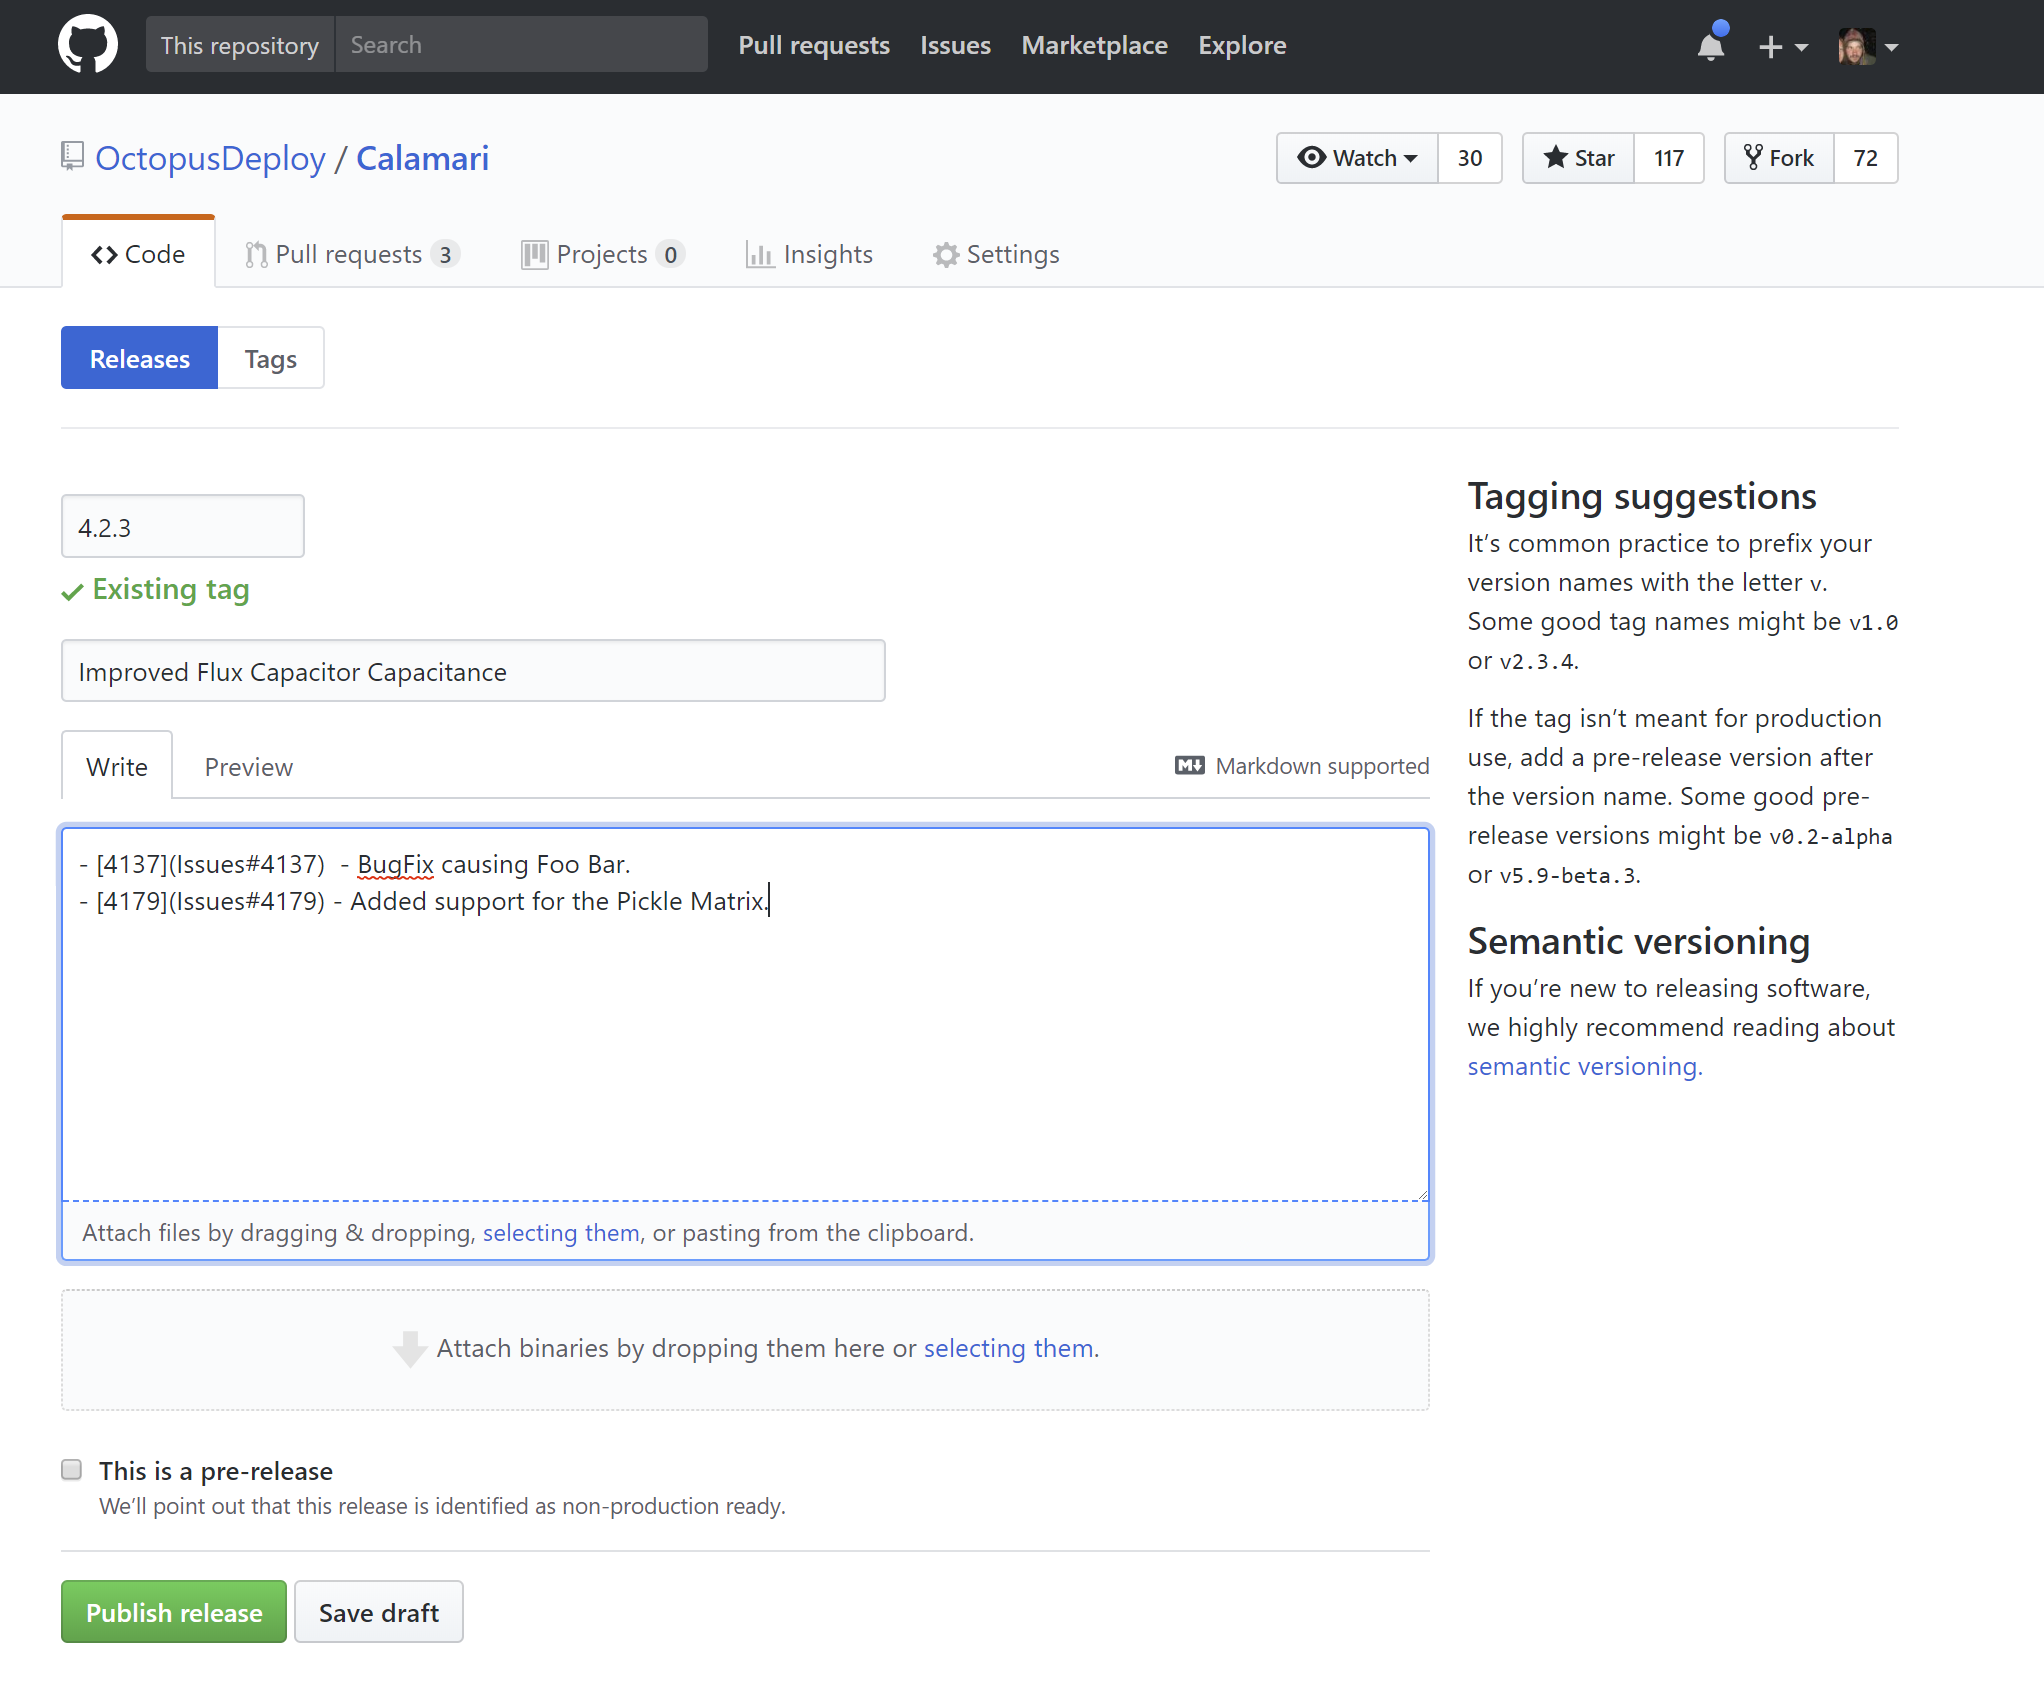 GitHub as a Feed - Octopus Deploy